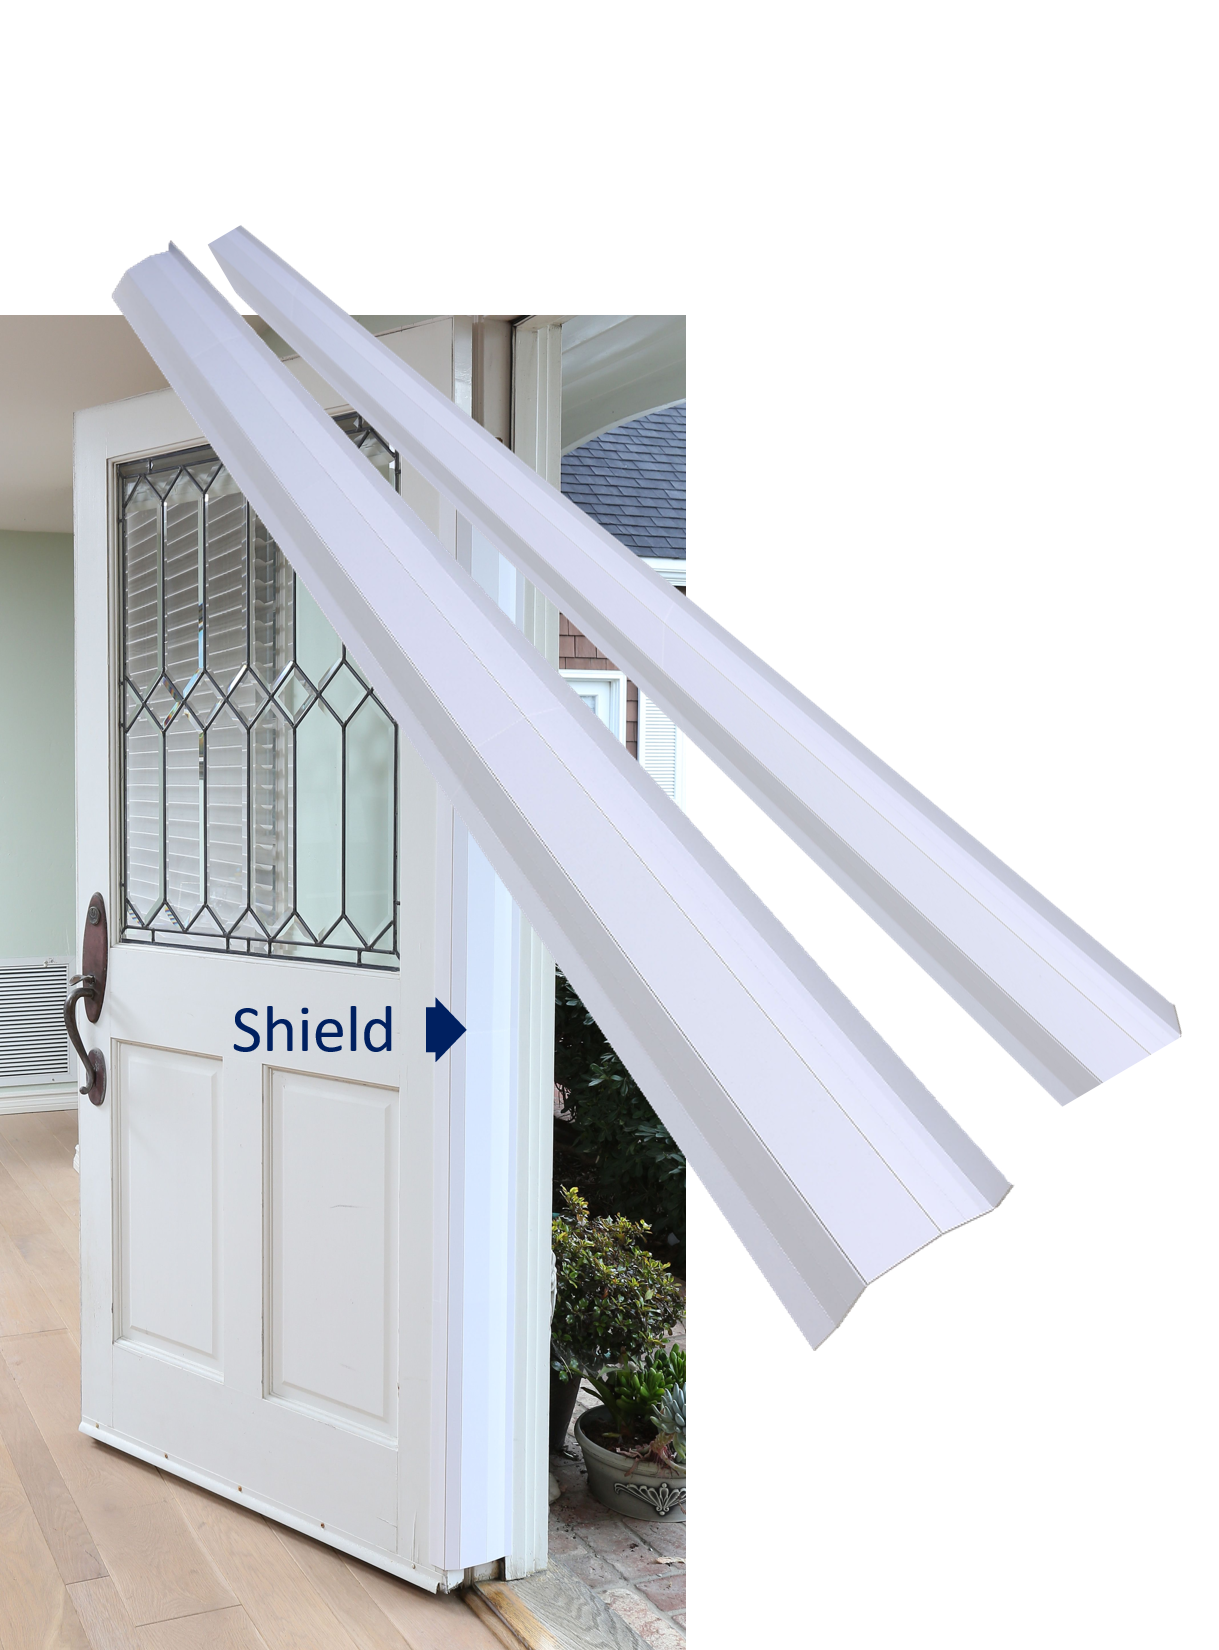 PinchNot Home Shield for 180 Degree Doors, Set, Guard for Door Finger Child Safety by Pinch-Not